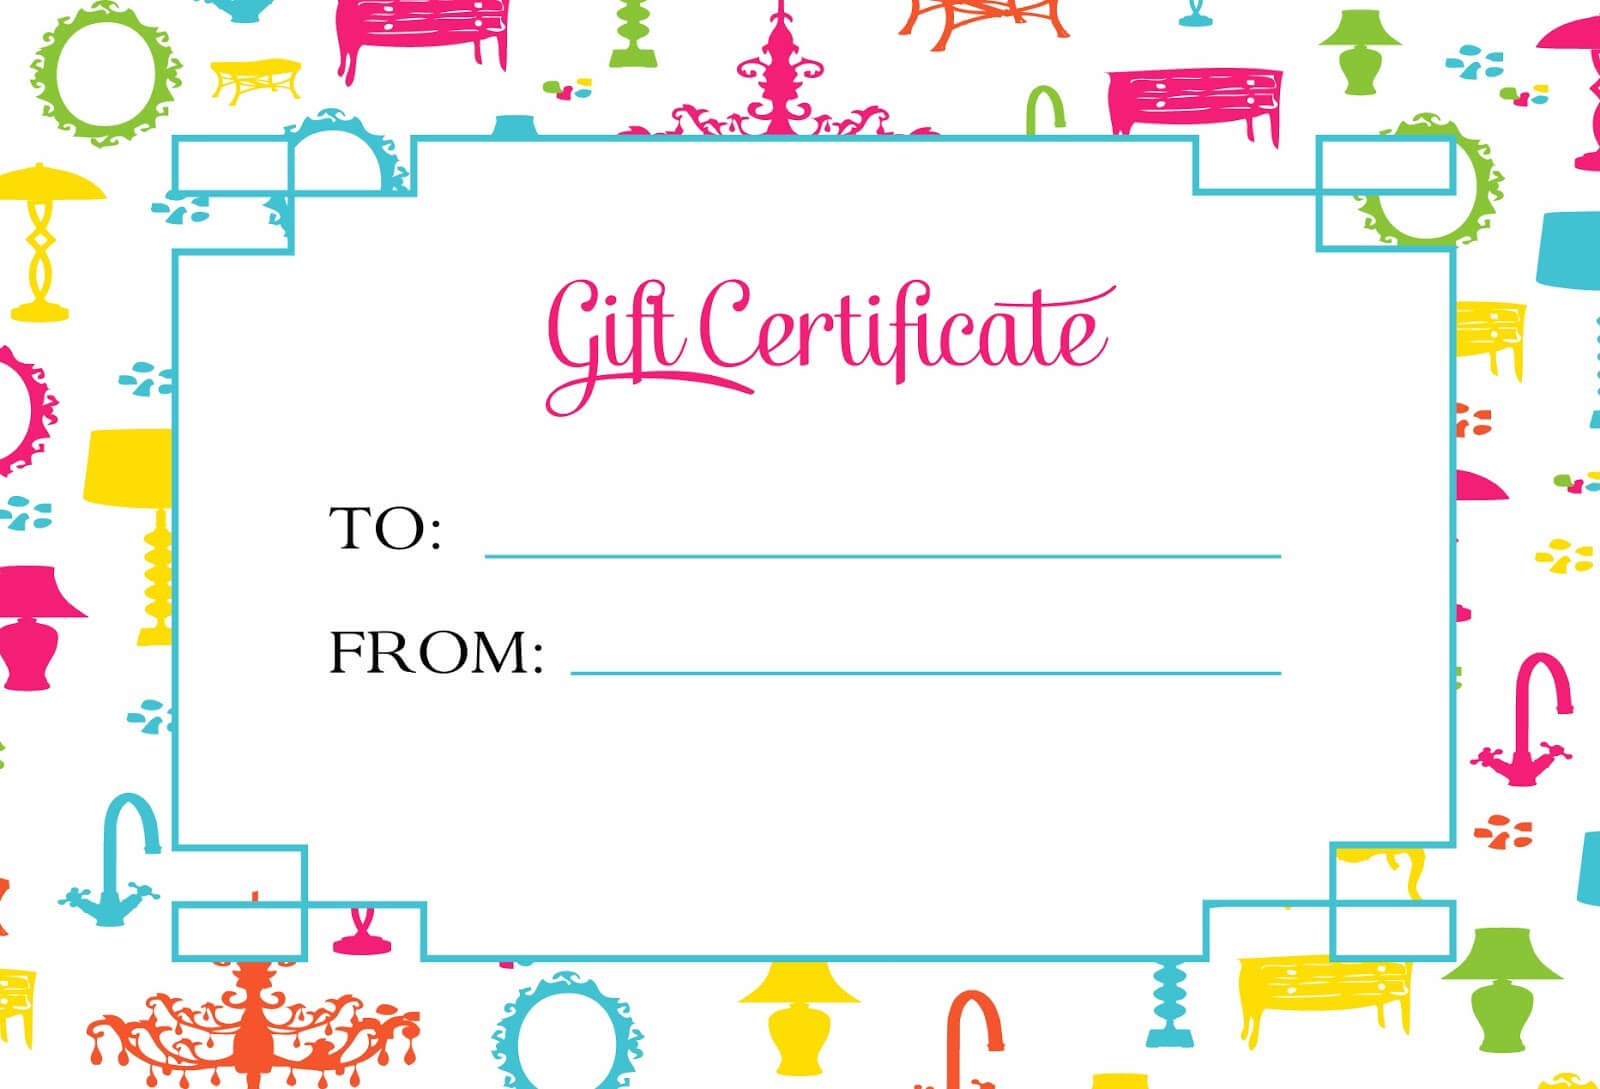 Gift Certificate Template For Kids Blanks | Loving Printable Throughout Kids Gift Certificate Template